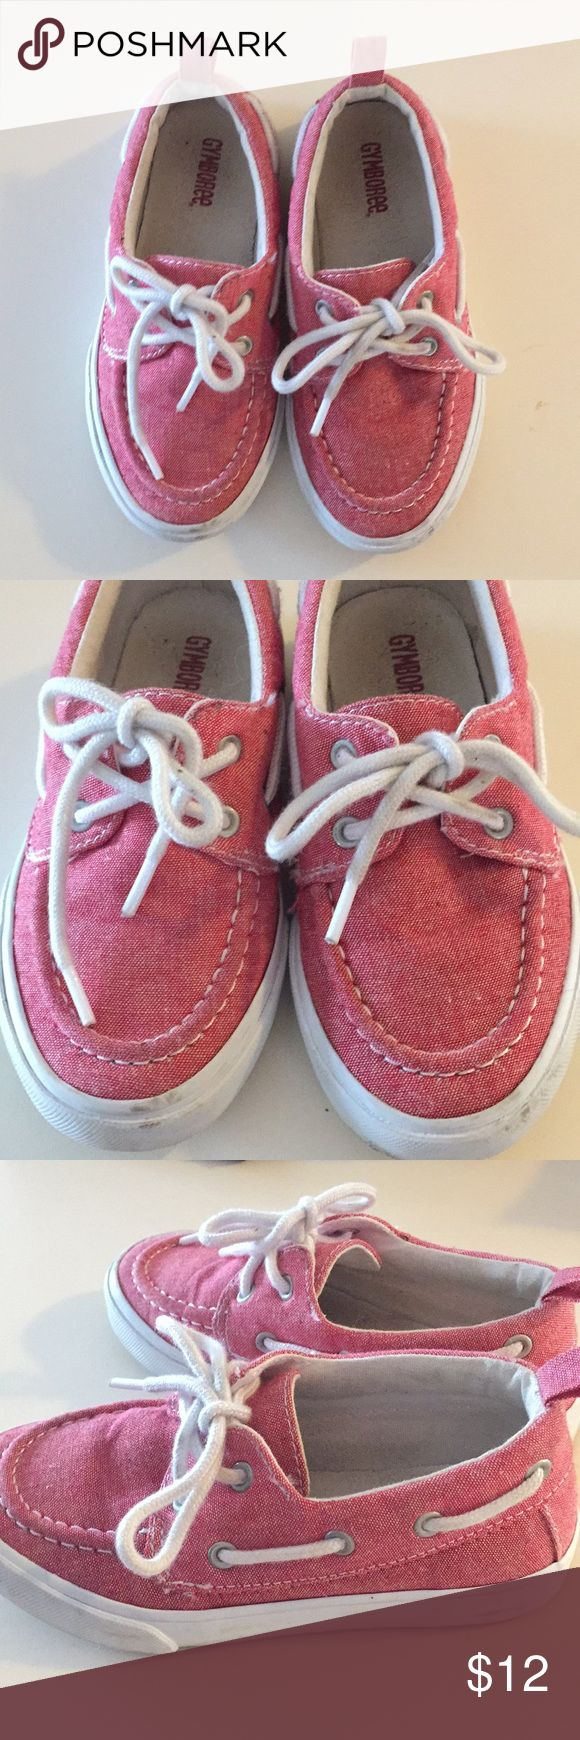 Pink boat shoes!! Super cute pink boat shoes for little boys. My son wore these once for a wedding. Got tons of compliments! Gymboree Shoes Dress Shoes